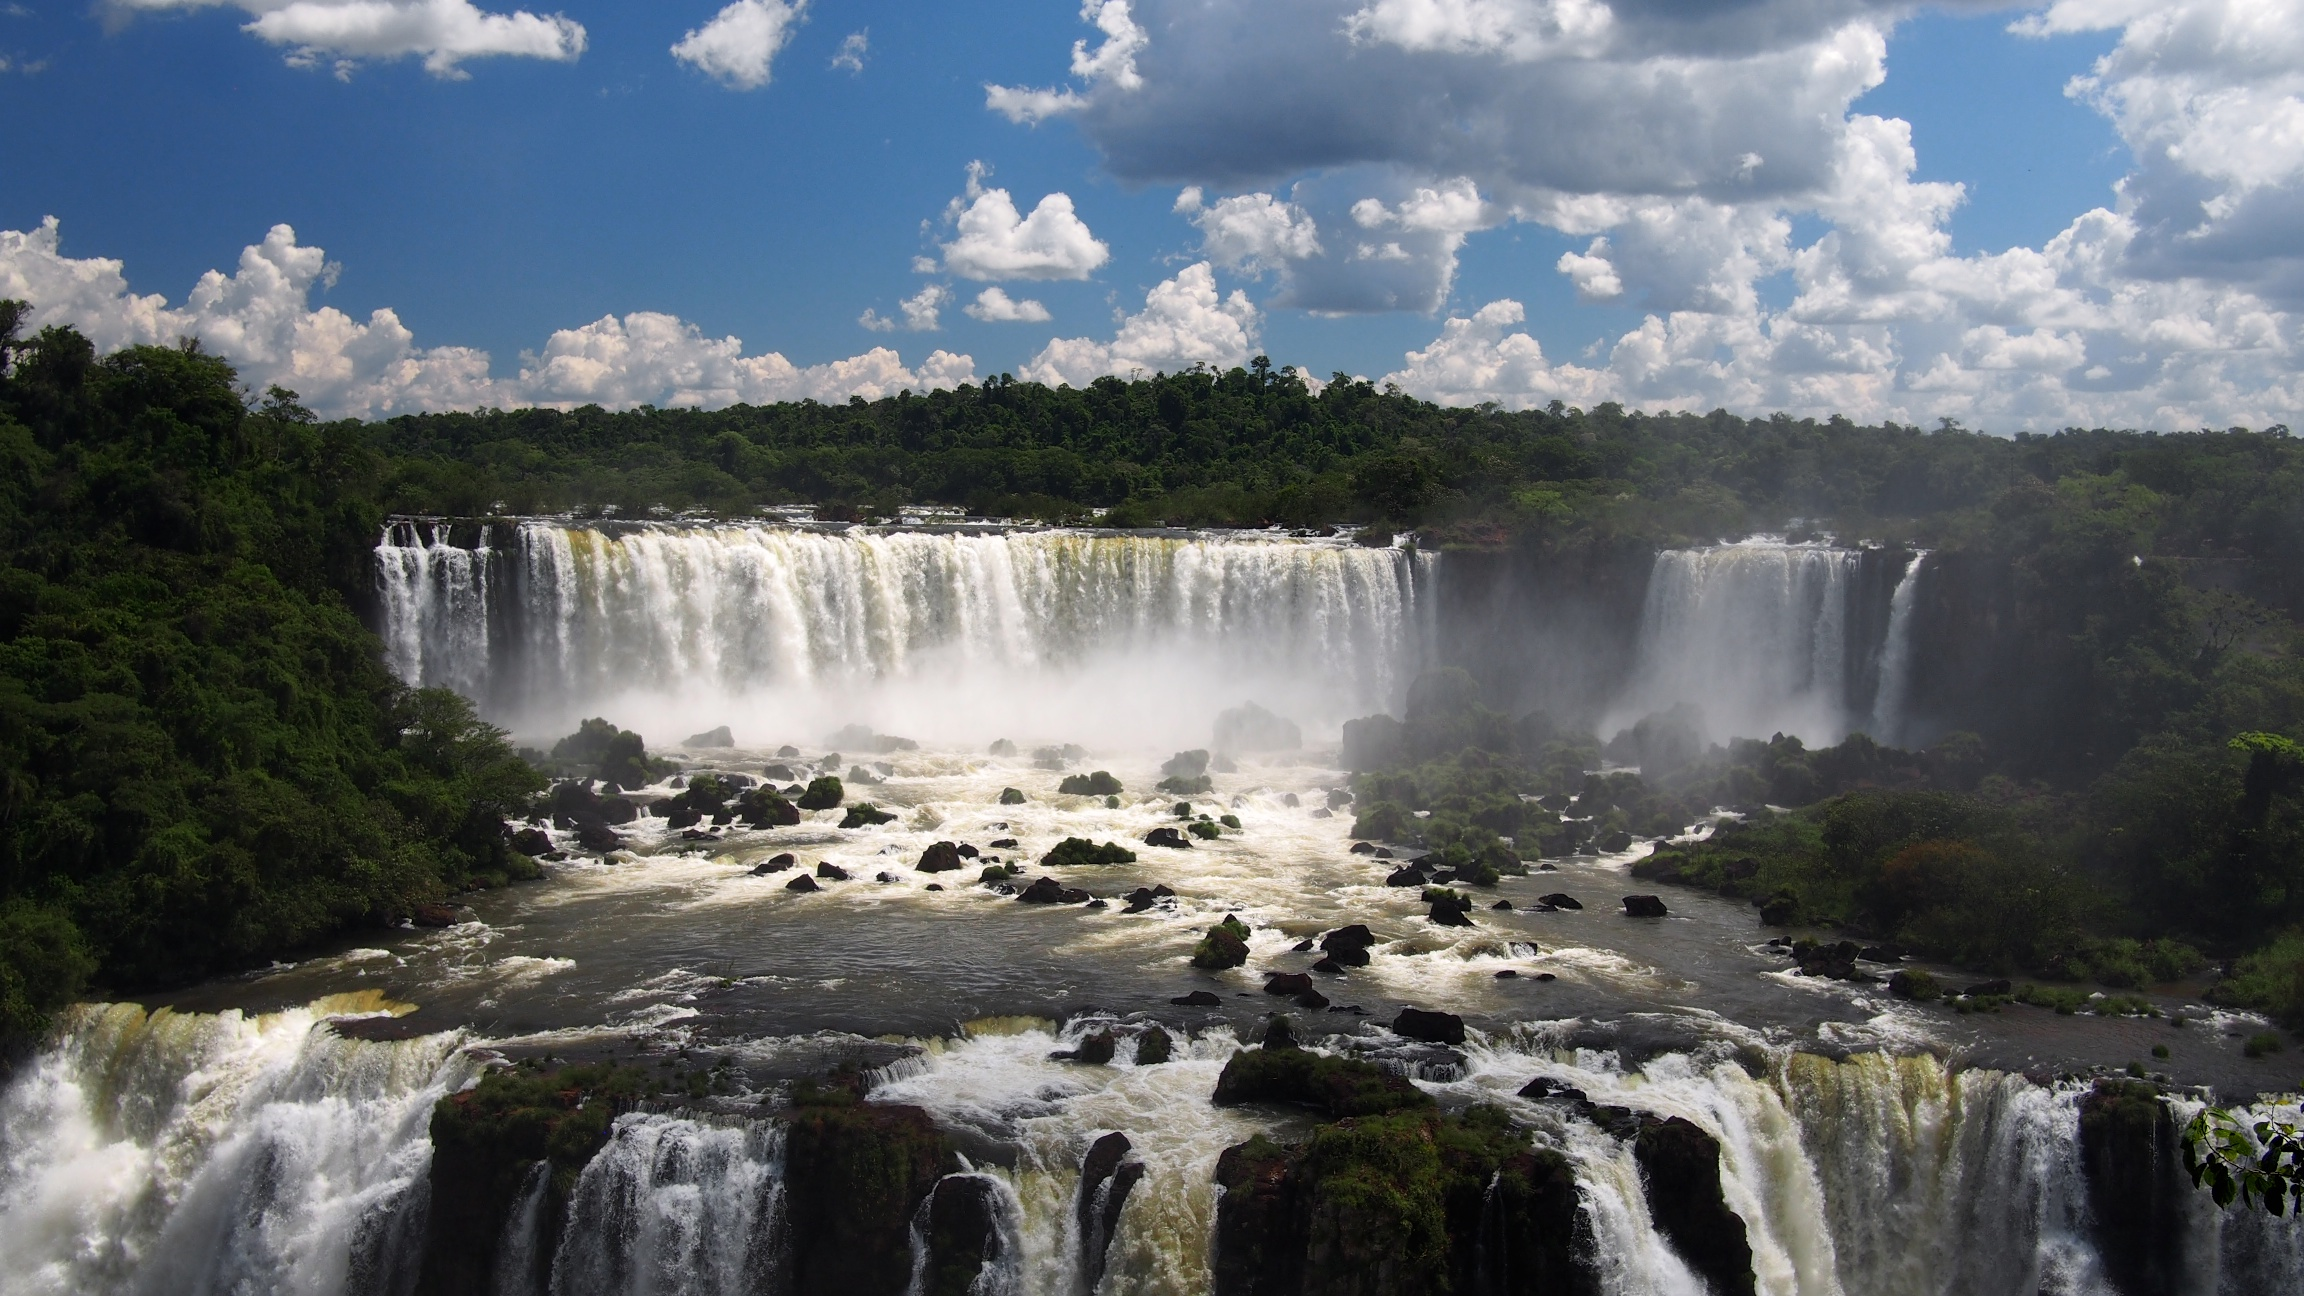 Salto Tres Mosqueteros y Salto Rivadavia from the Brazil side